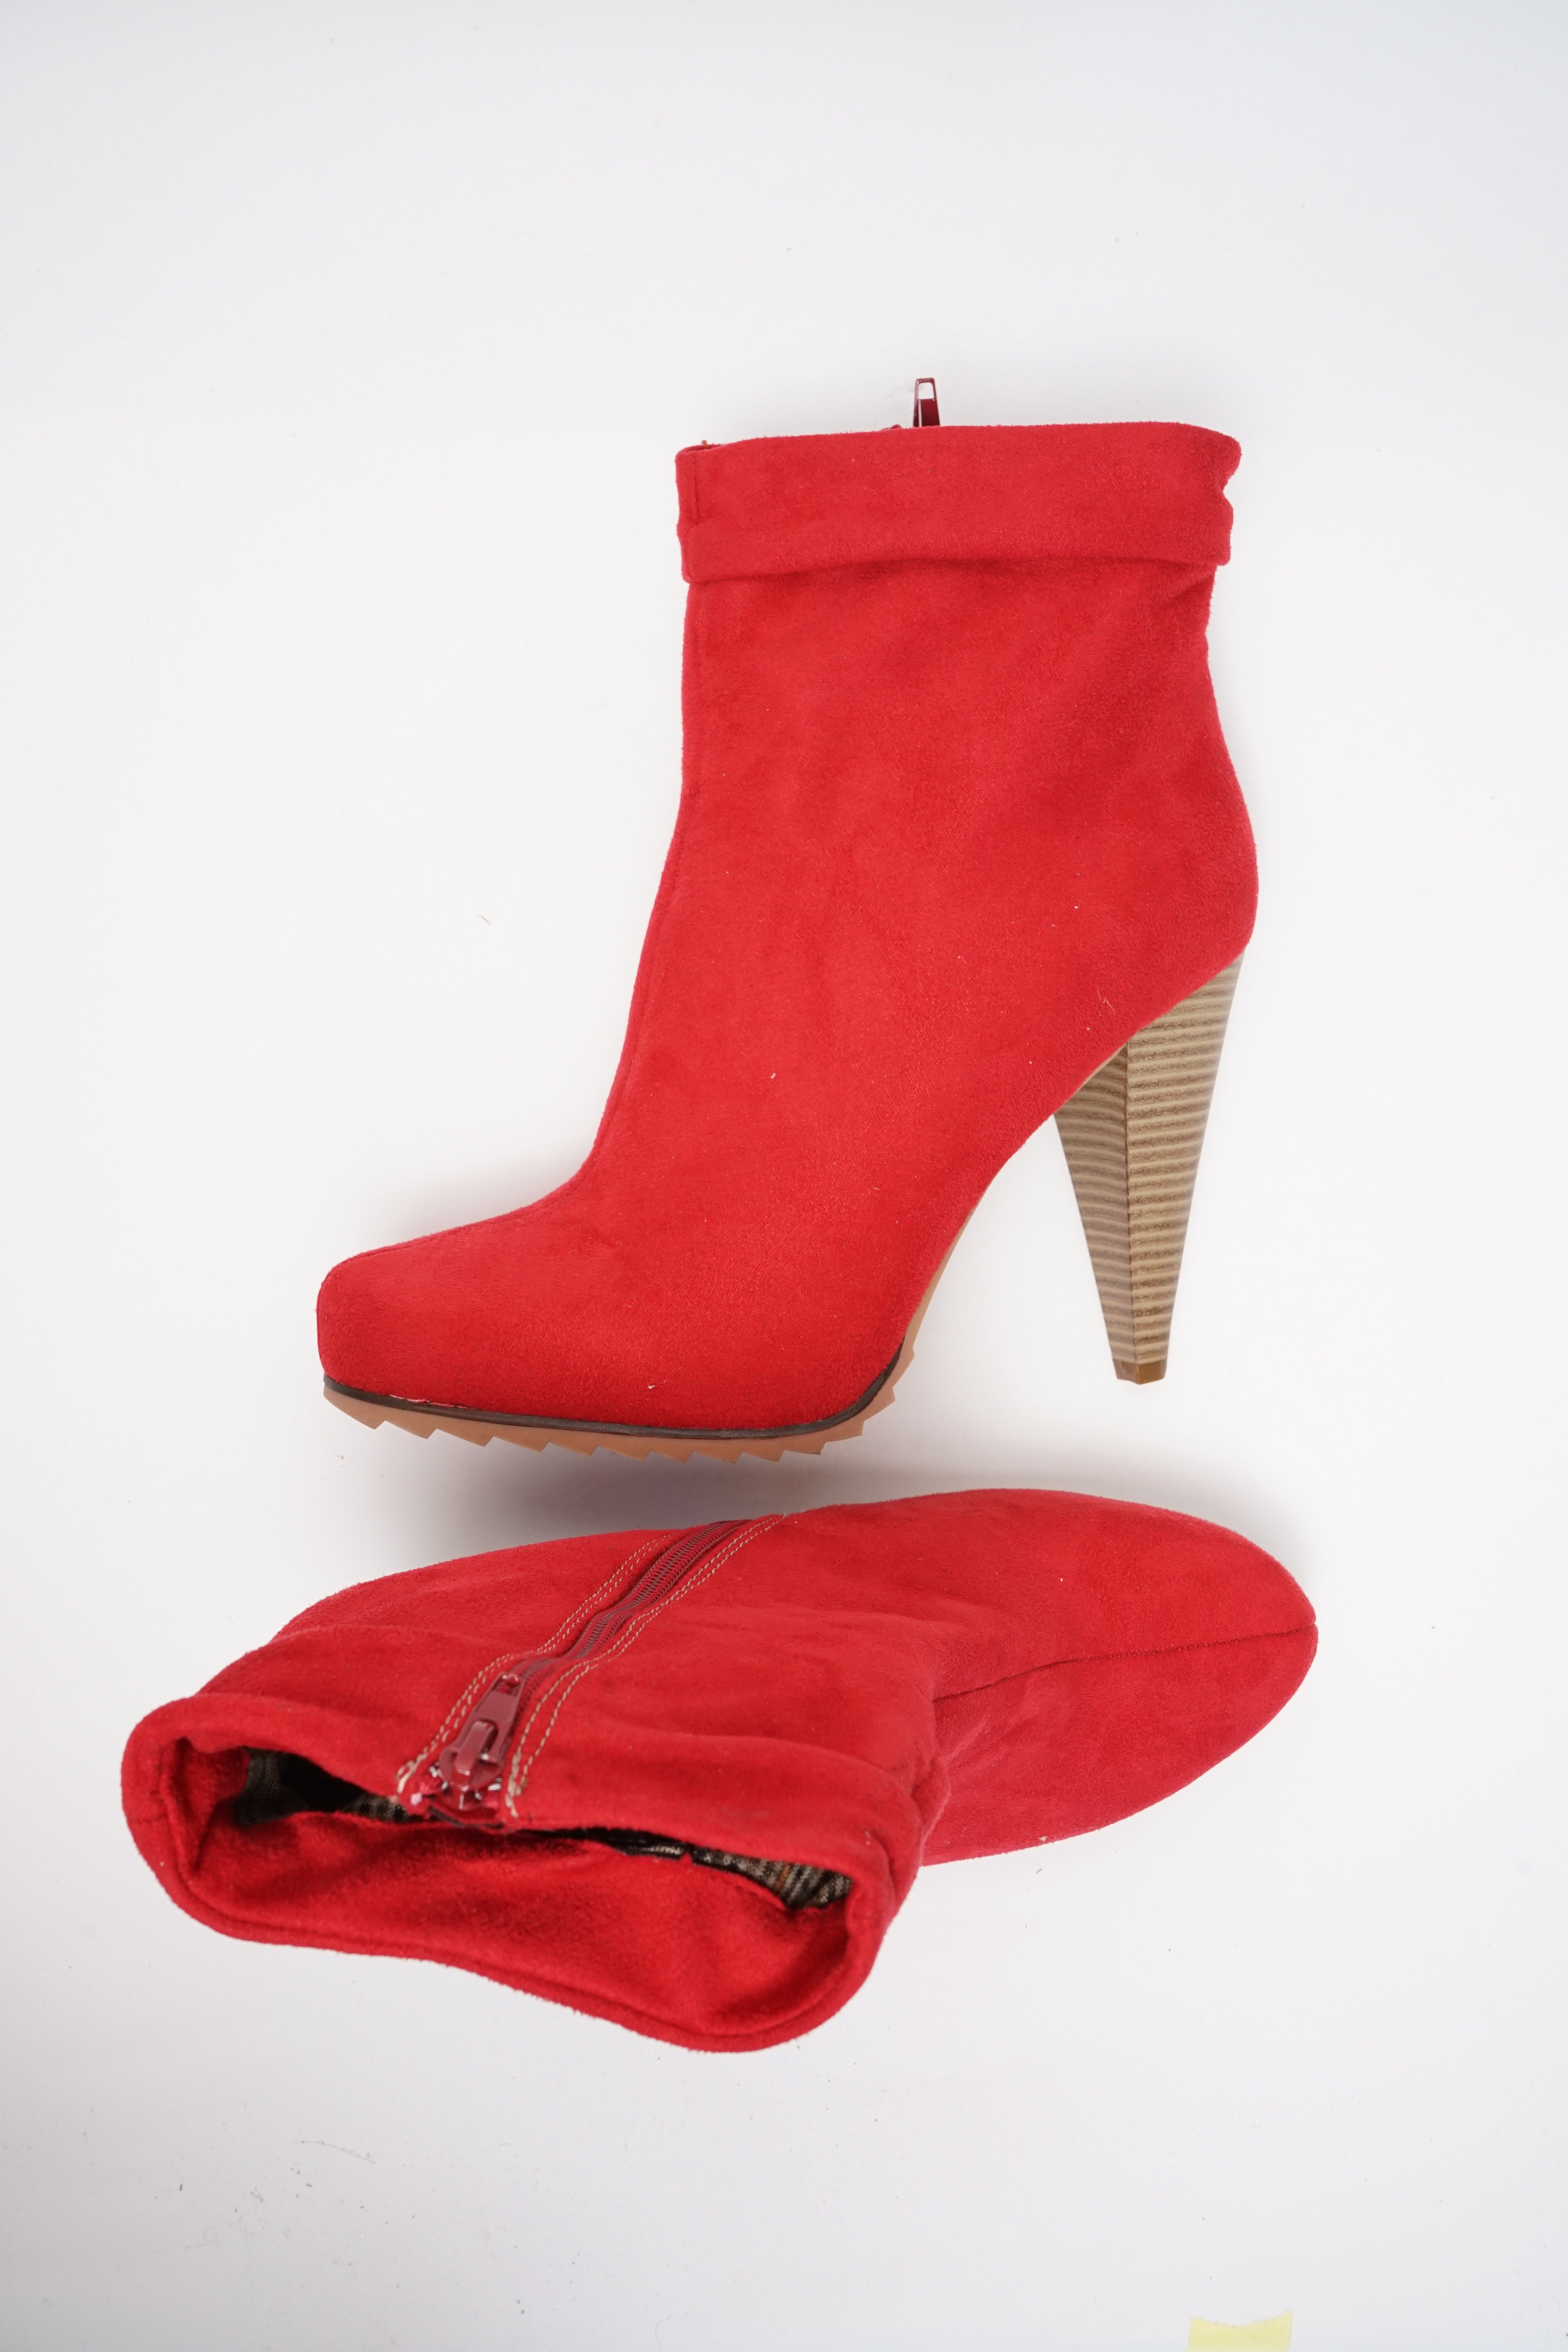 Asos Stiefel / Stiefelette / Boots Rot Gr.41